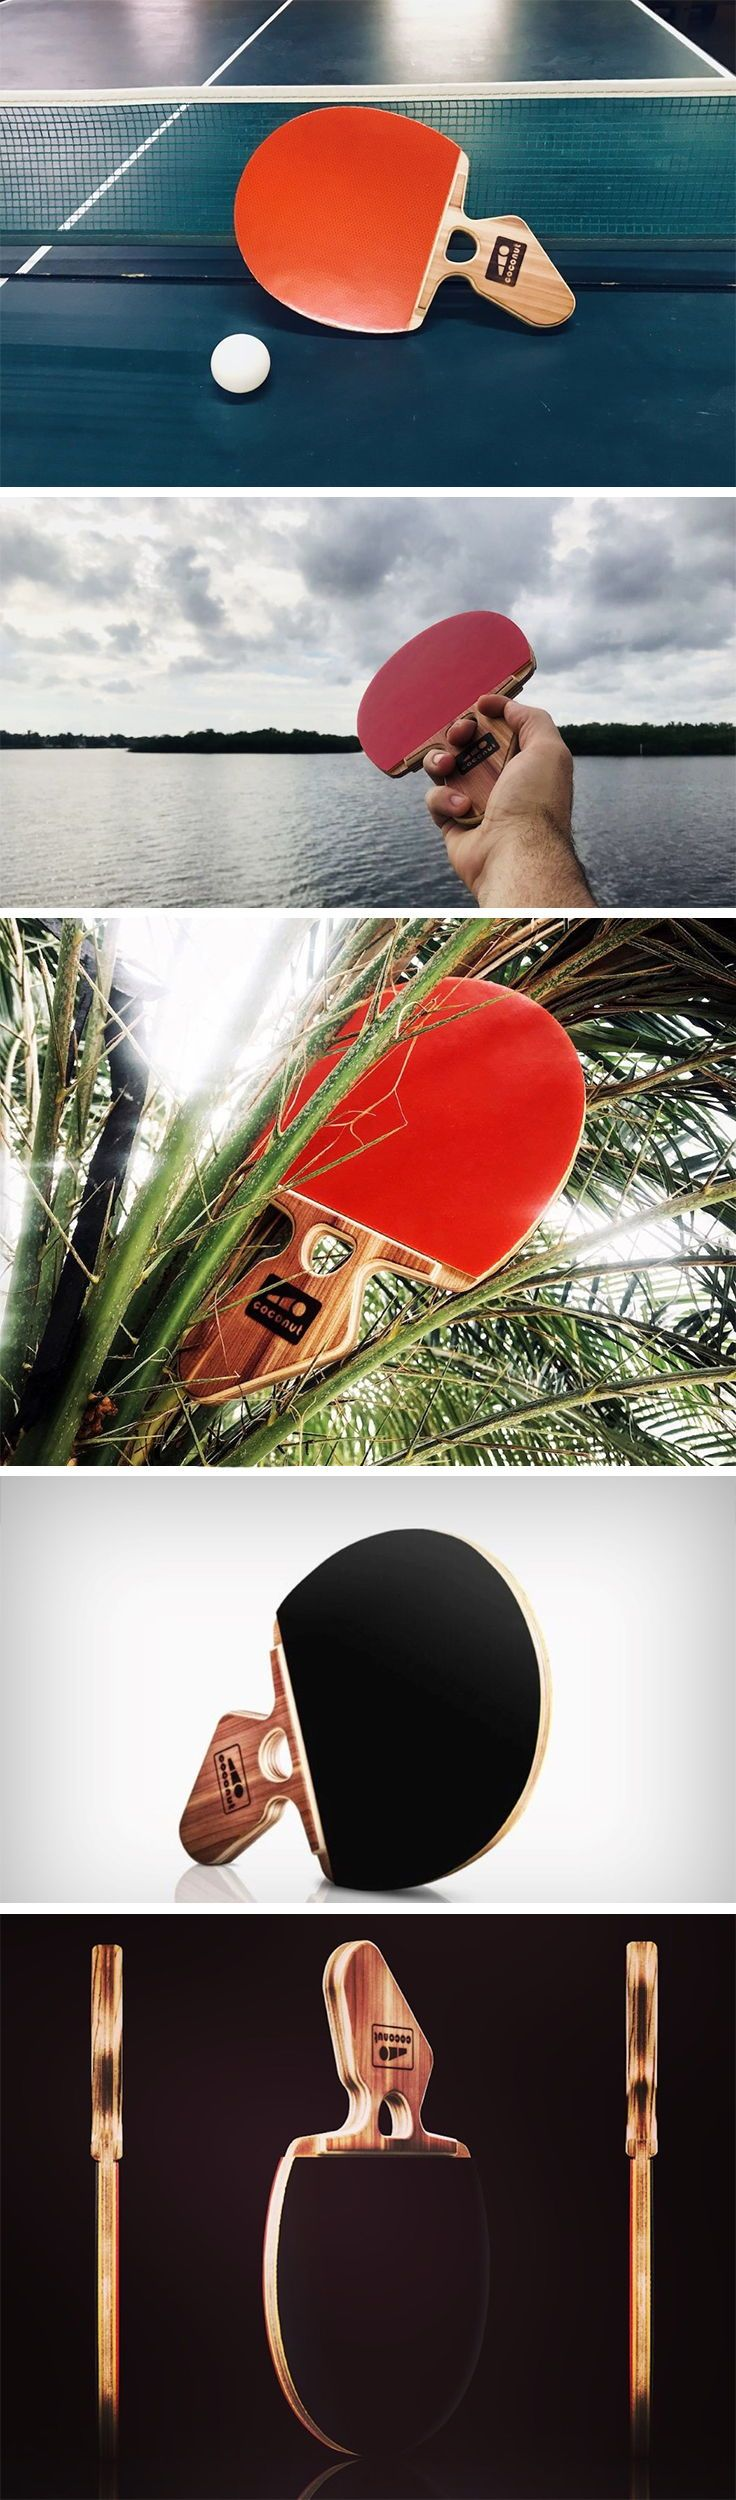 Coconut Paddles V2 gives the table tennis paddle a radical grip makeover that doesn't just encourage you to hold it the right way, but even dramatically improves your strokes, and its non-cylindrical design means it'll never slip out of your hand in the middle of a game.